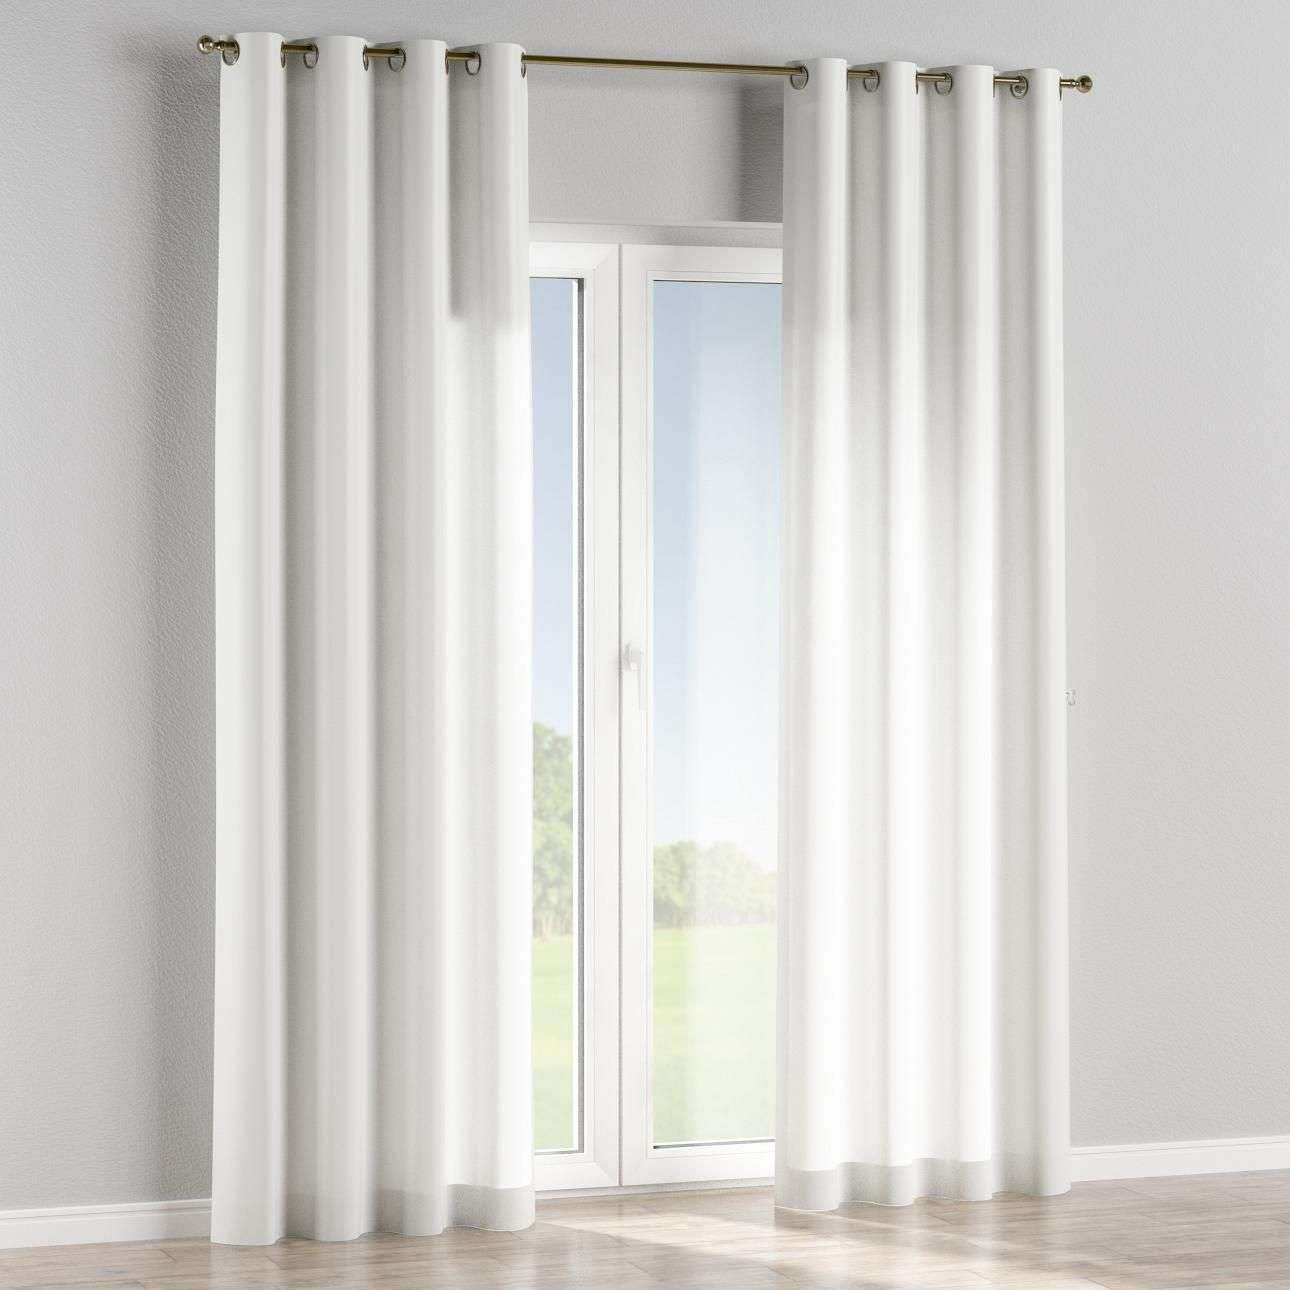 Eyelet lined curtains in collection Ashley, fabric: 137-46